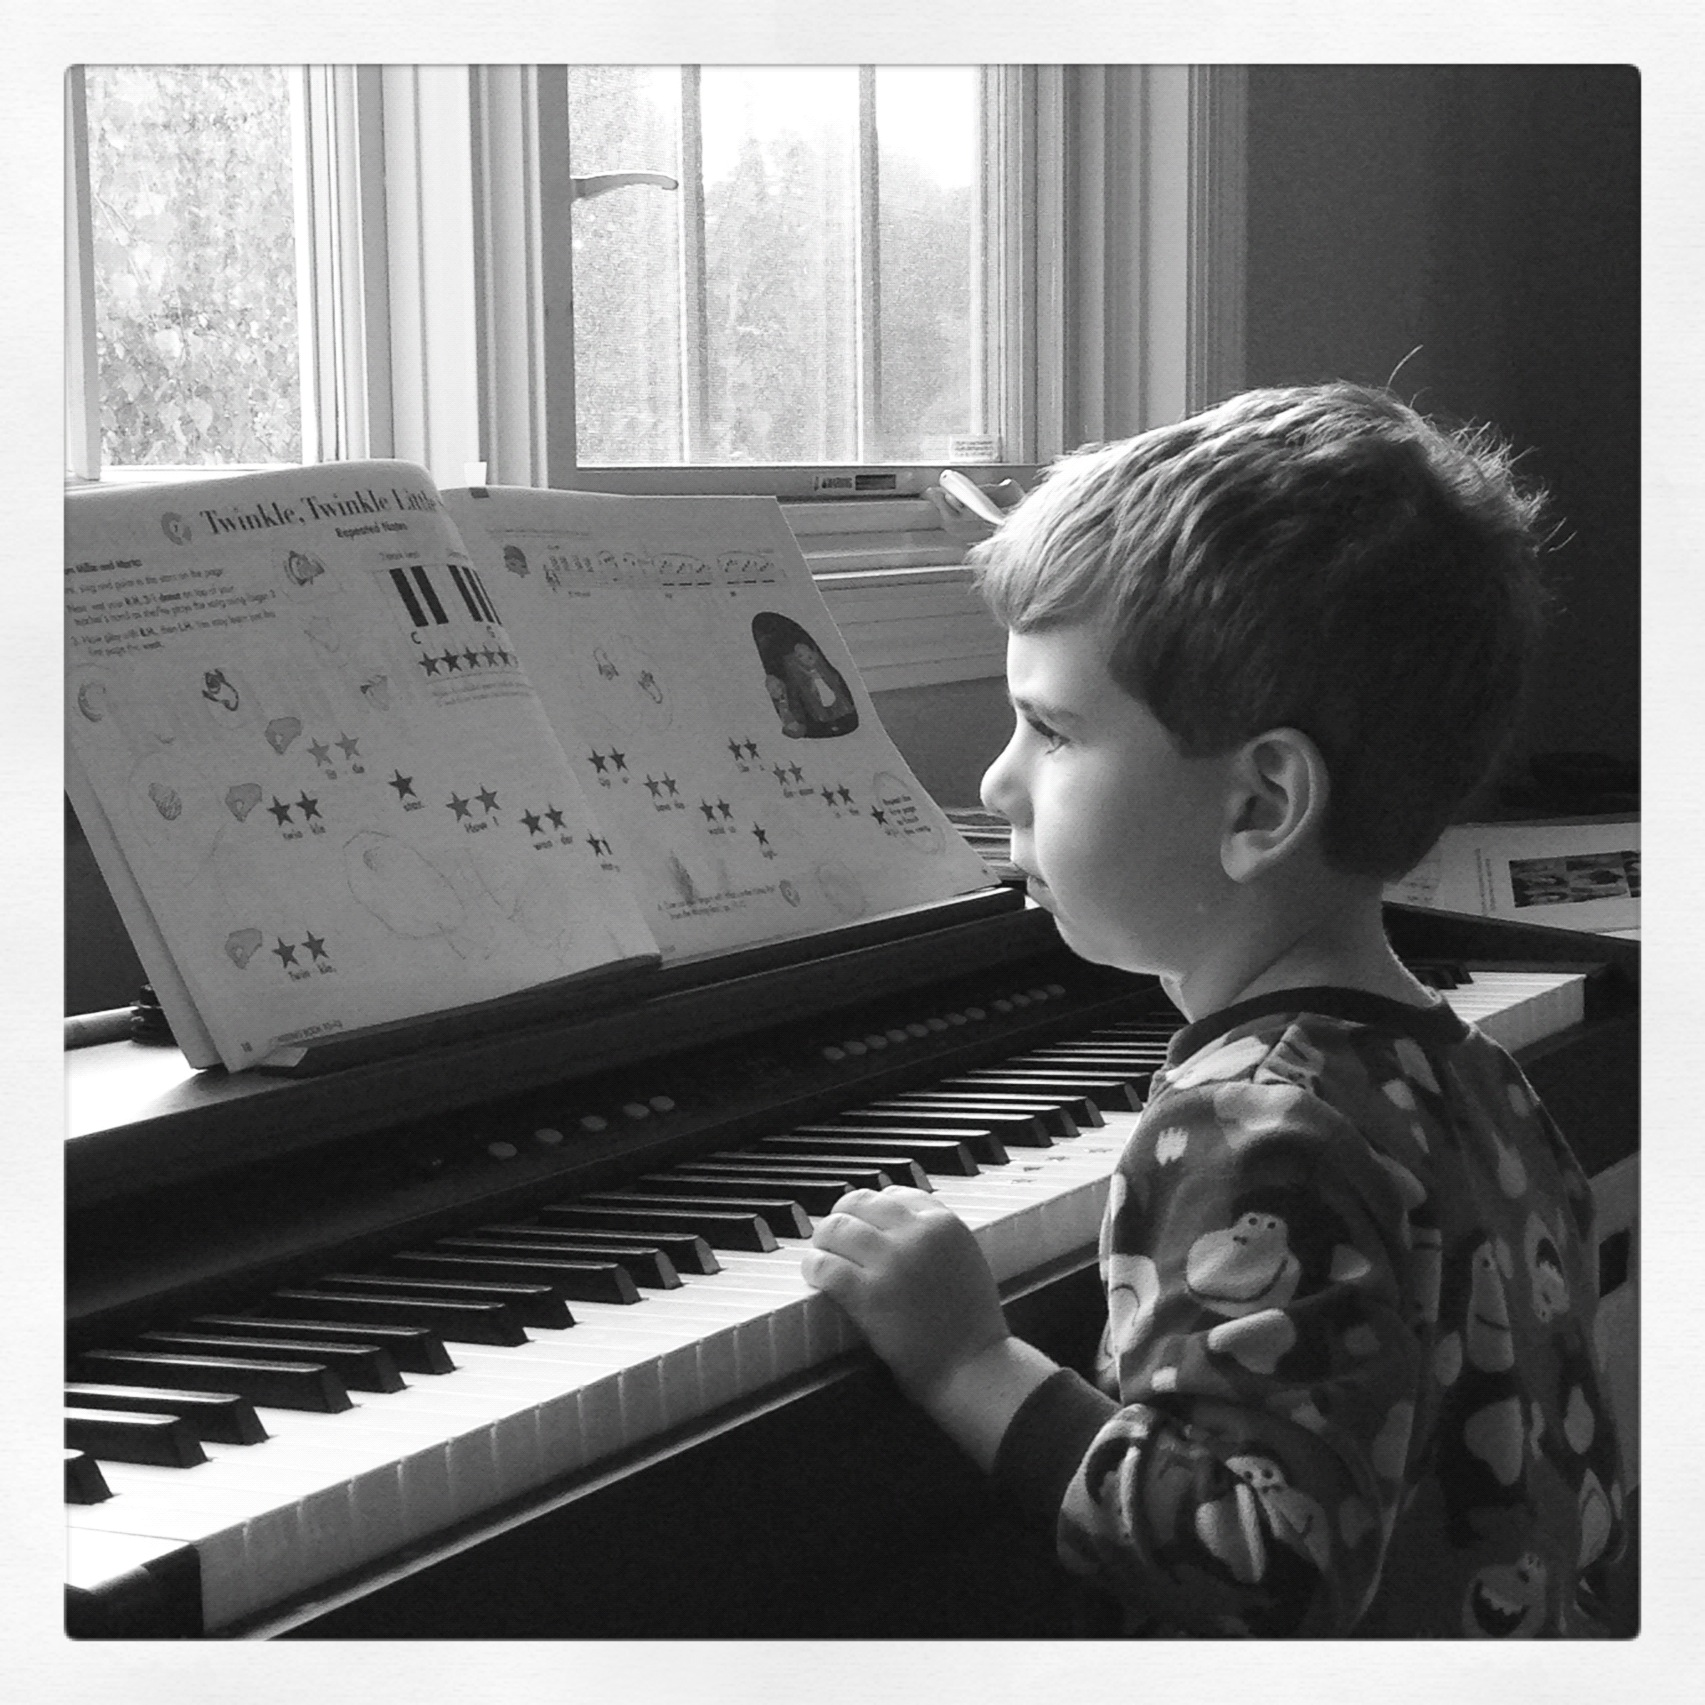 Jonah playing piano Sept 2013